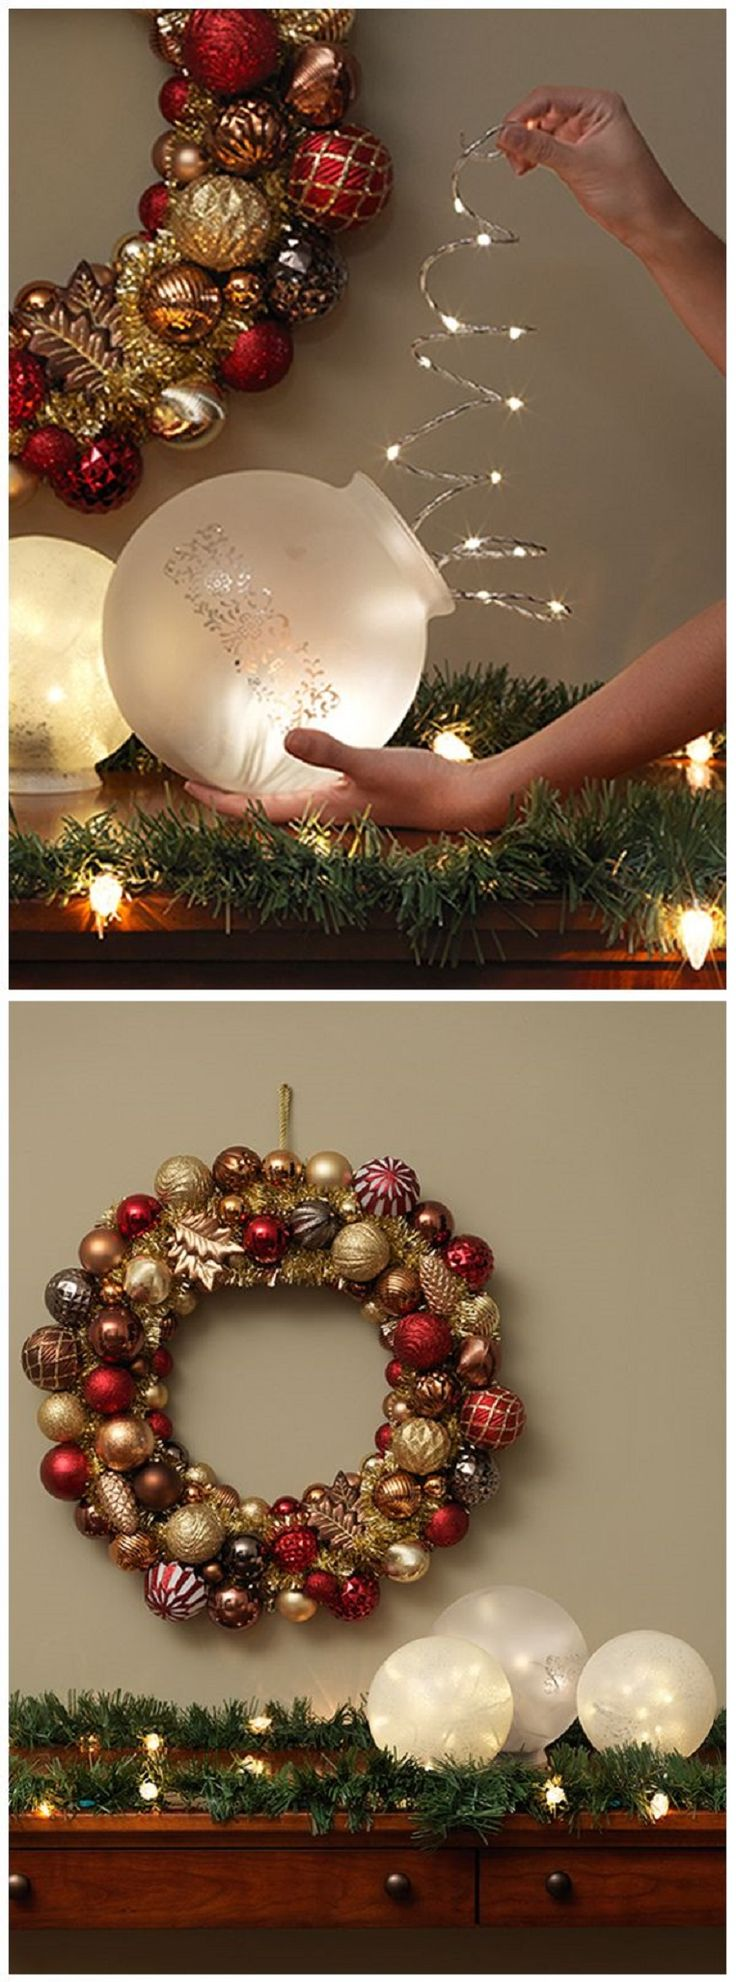 Just tje globes          Luminous Christmas Decoration - 14 DIY Christmas Office Decorations | GleamItUp